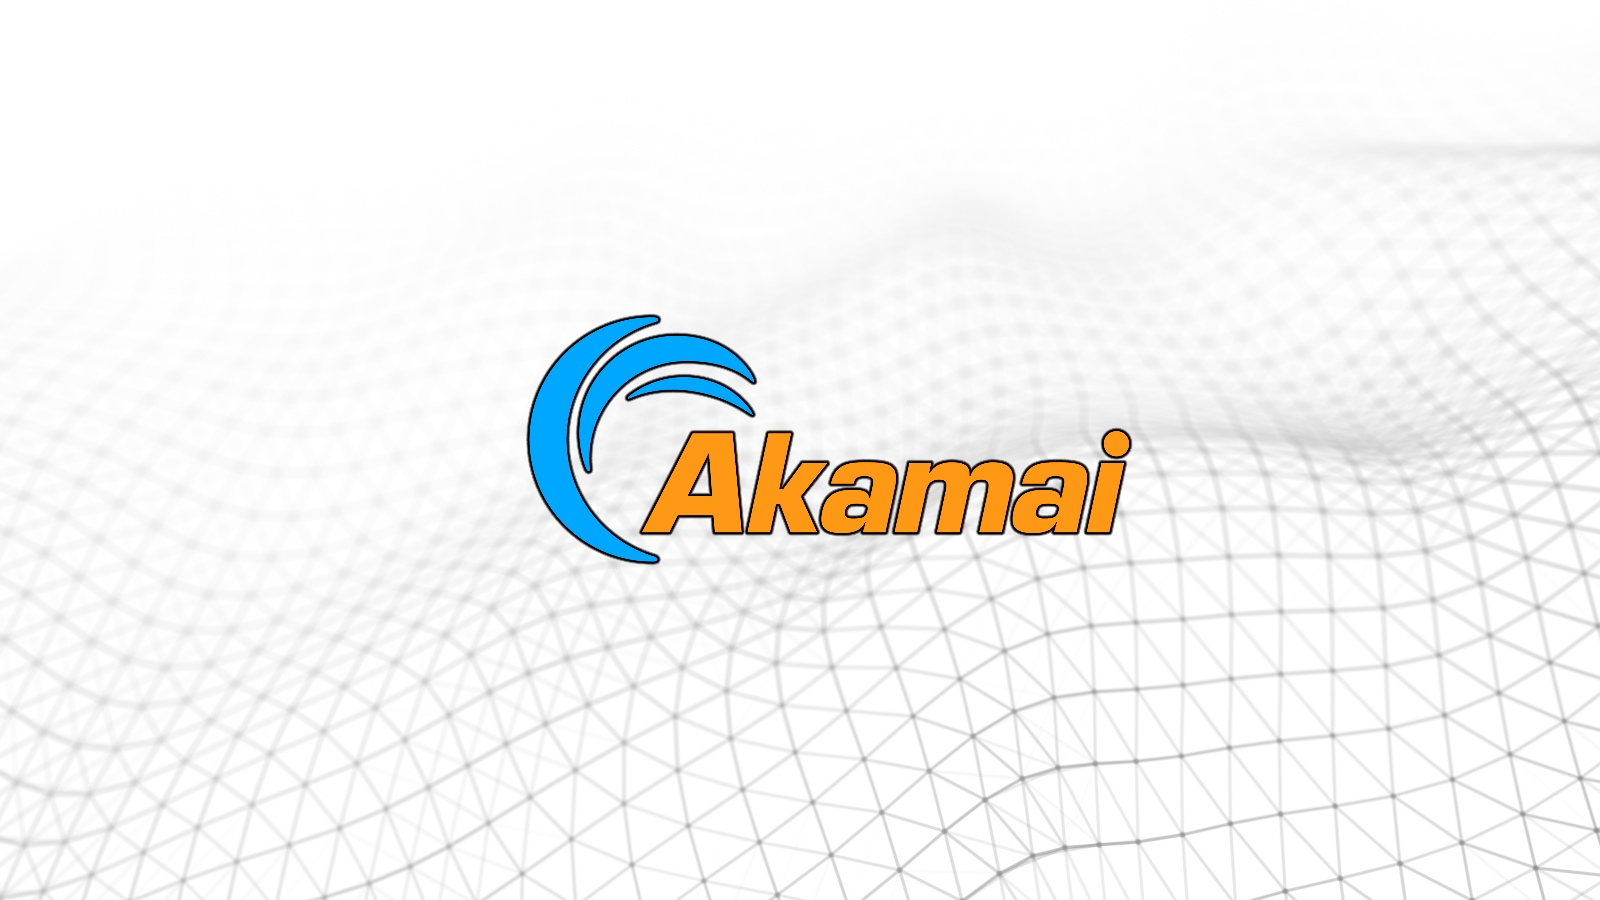 Worldwide Akamai DNS outage takes down major sites, online services